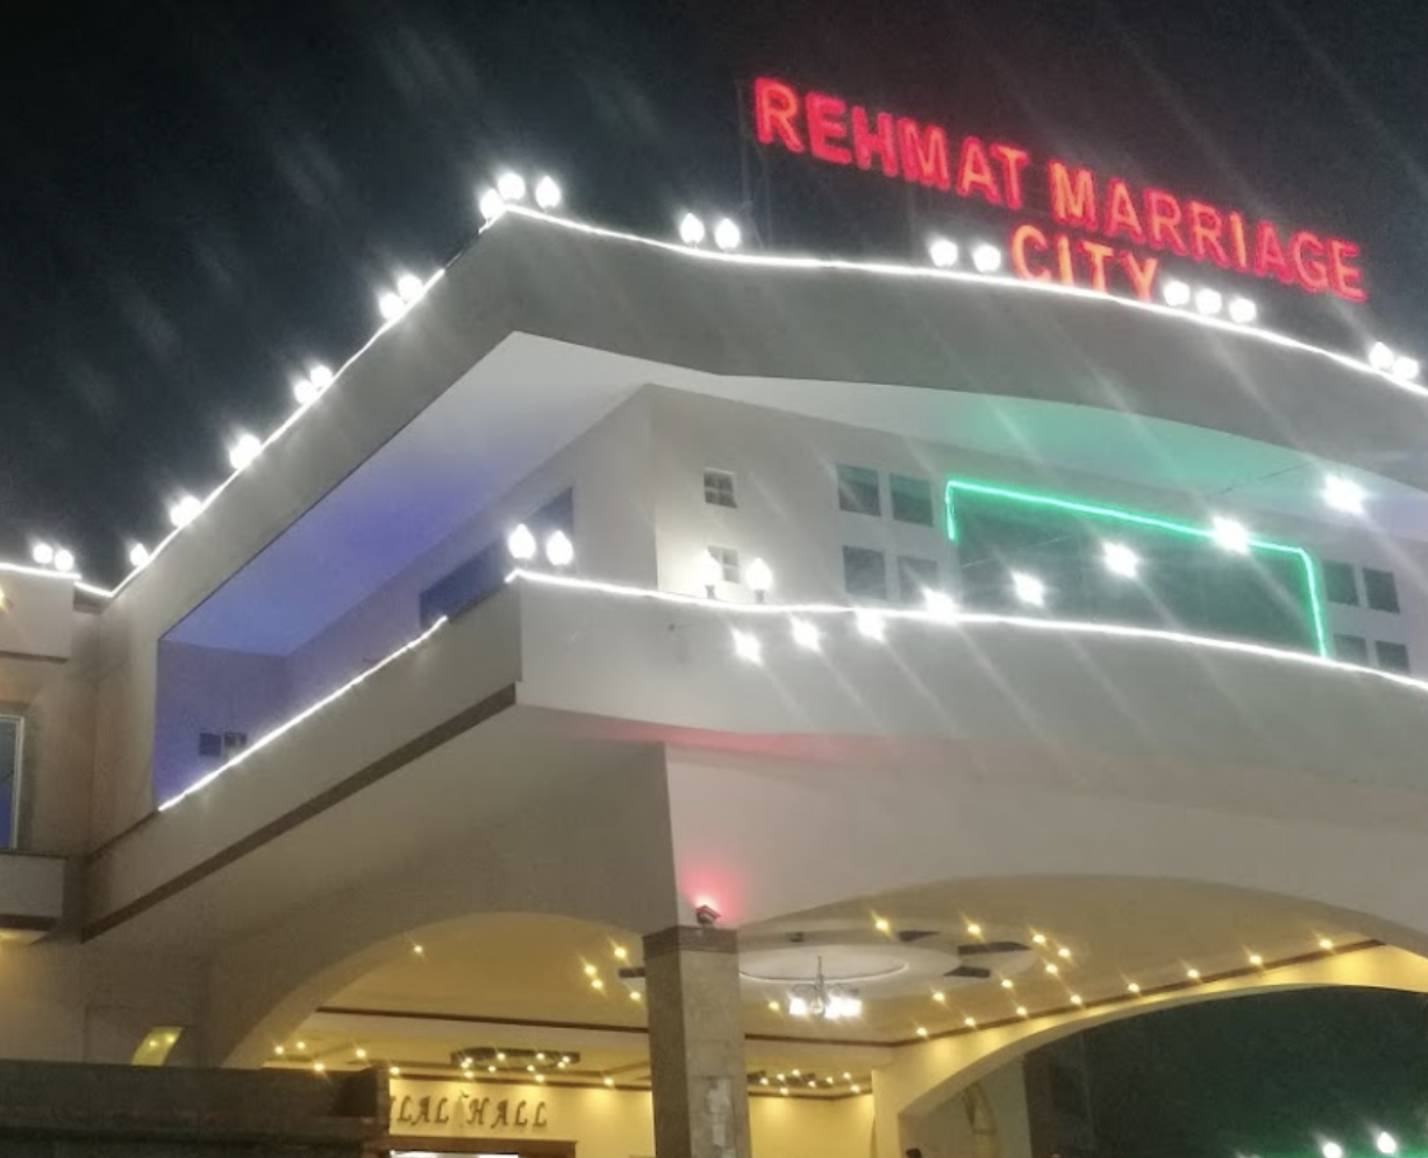 Rehmat Marriage City